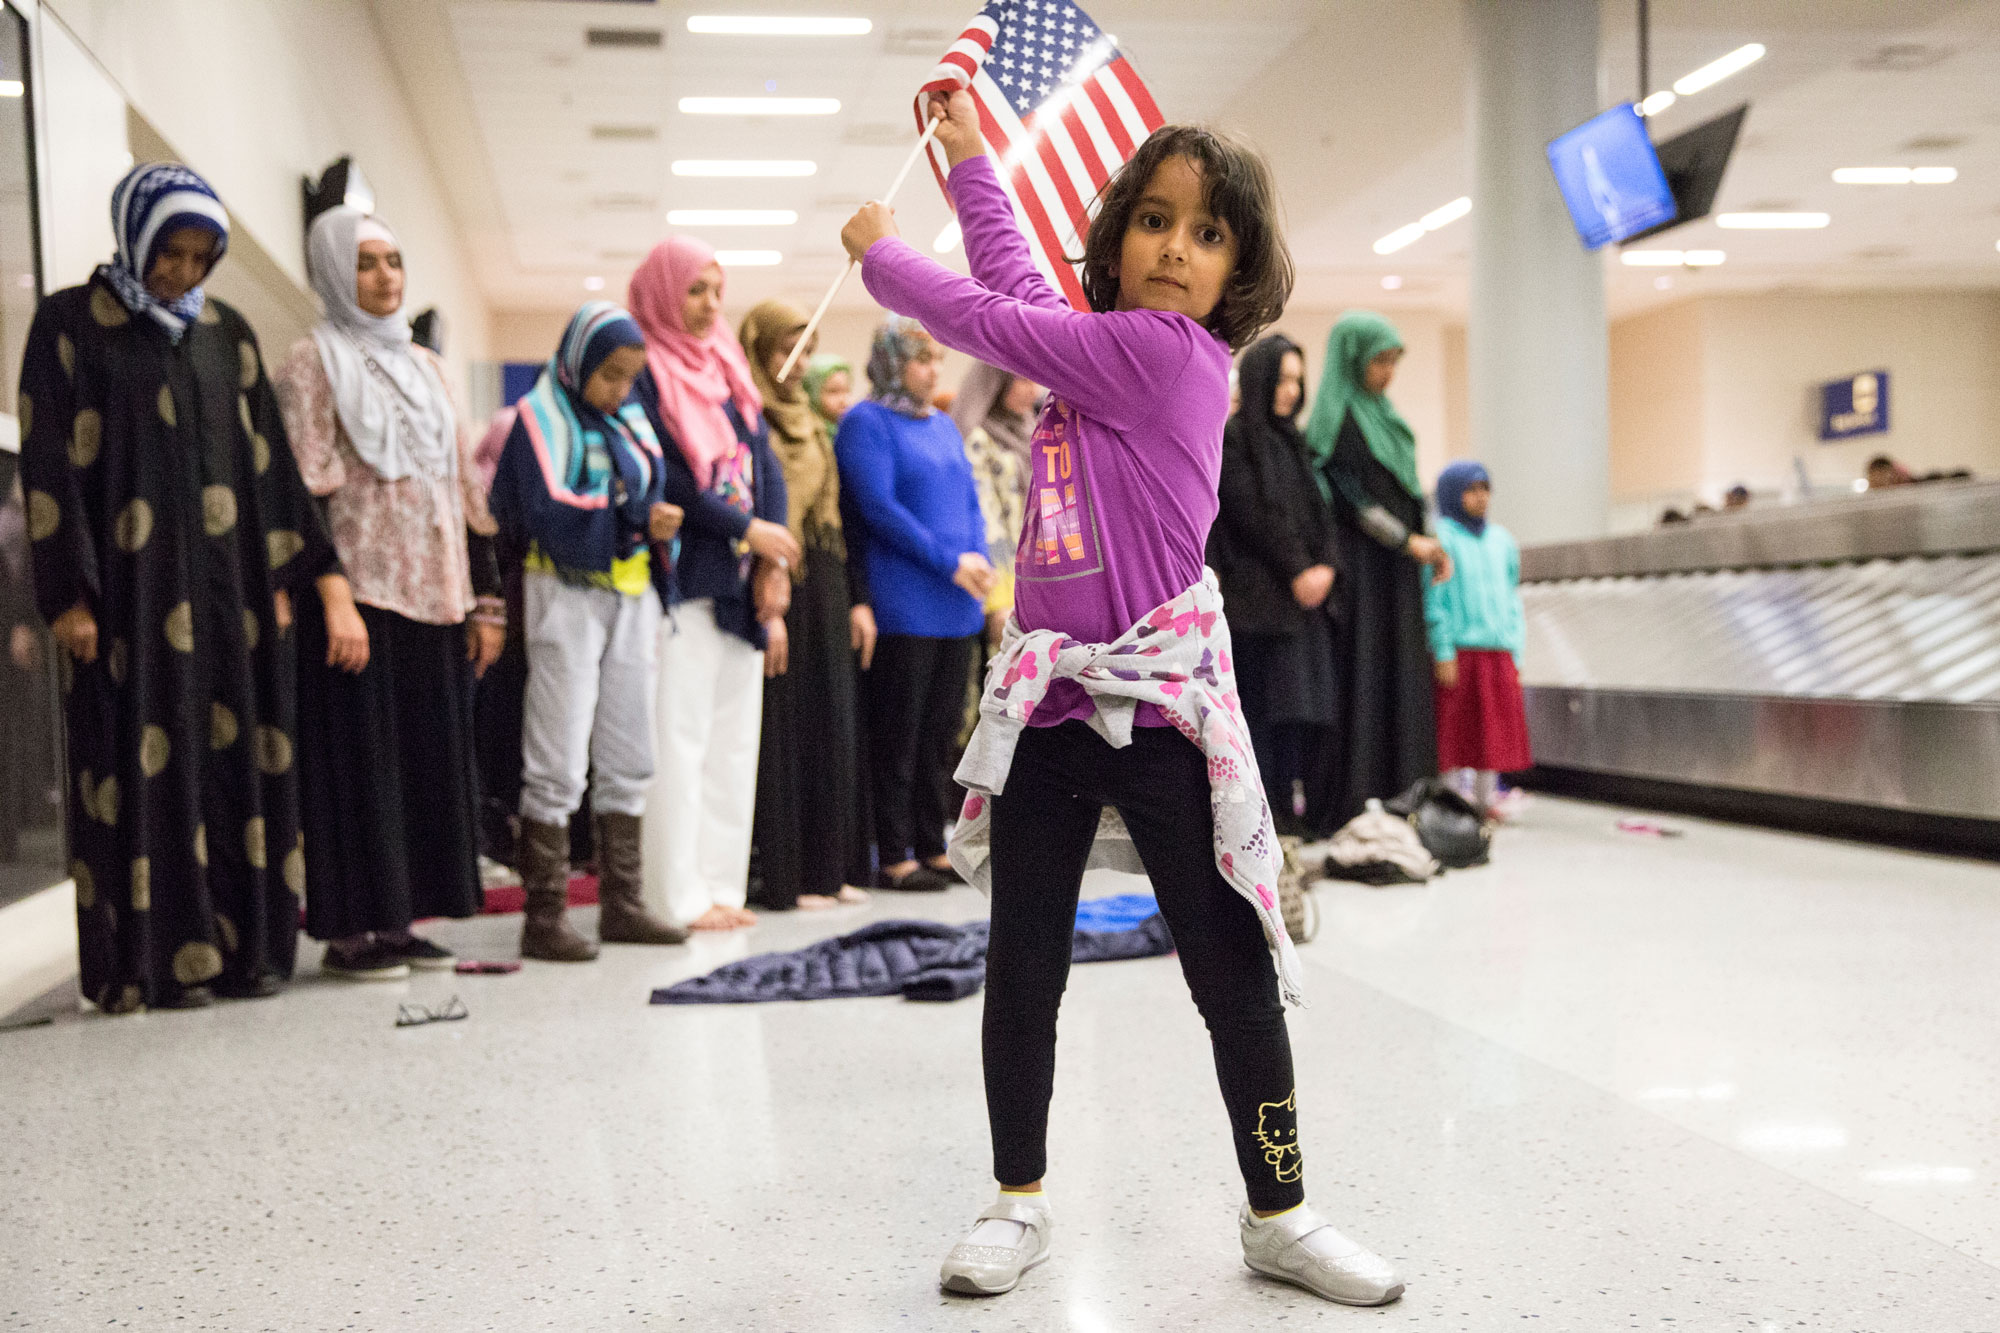 A young girl dances with an American flag in baggage claim while women pray behind her during a protest at the Dallas/Fort Worth International Airport.